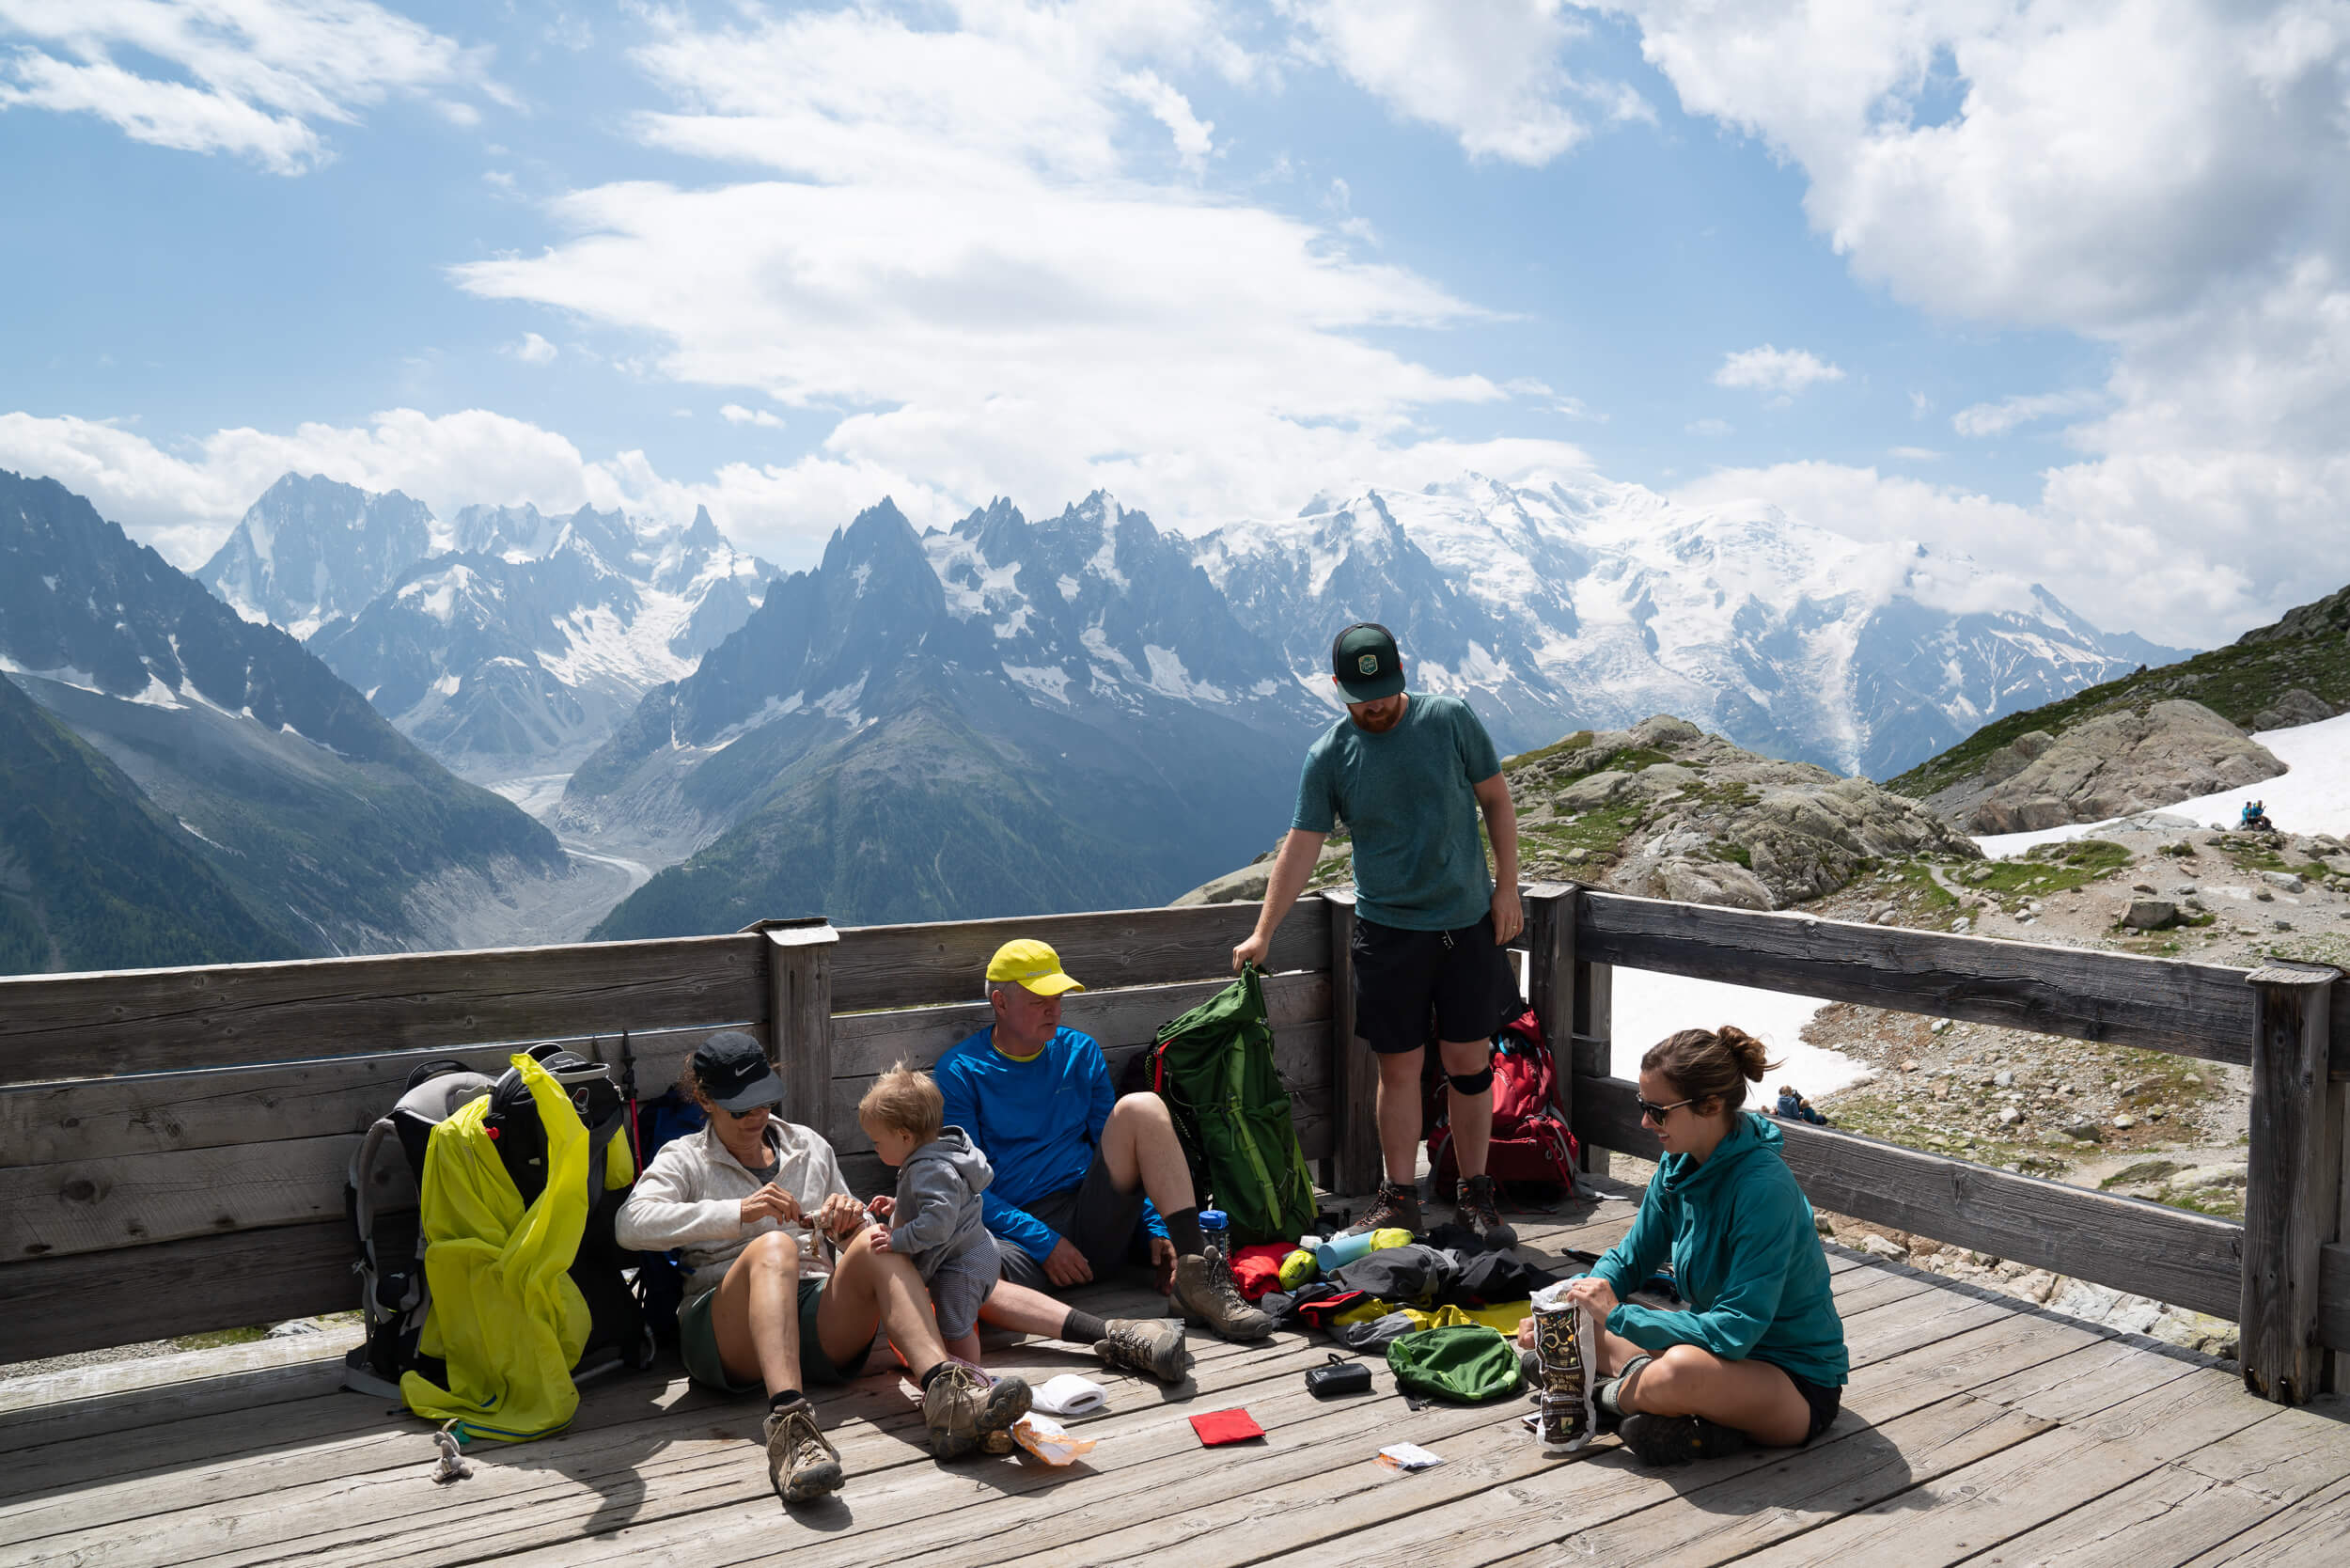 There's no shortage of epic places to stop for a snack along the Tour du Mont Blanc!